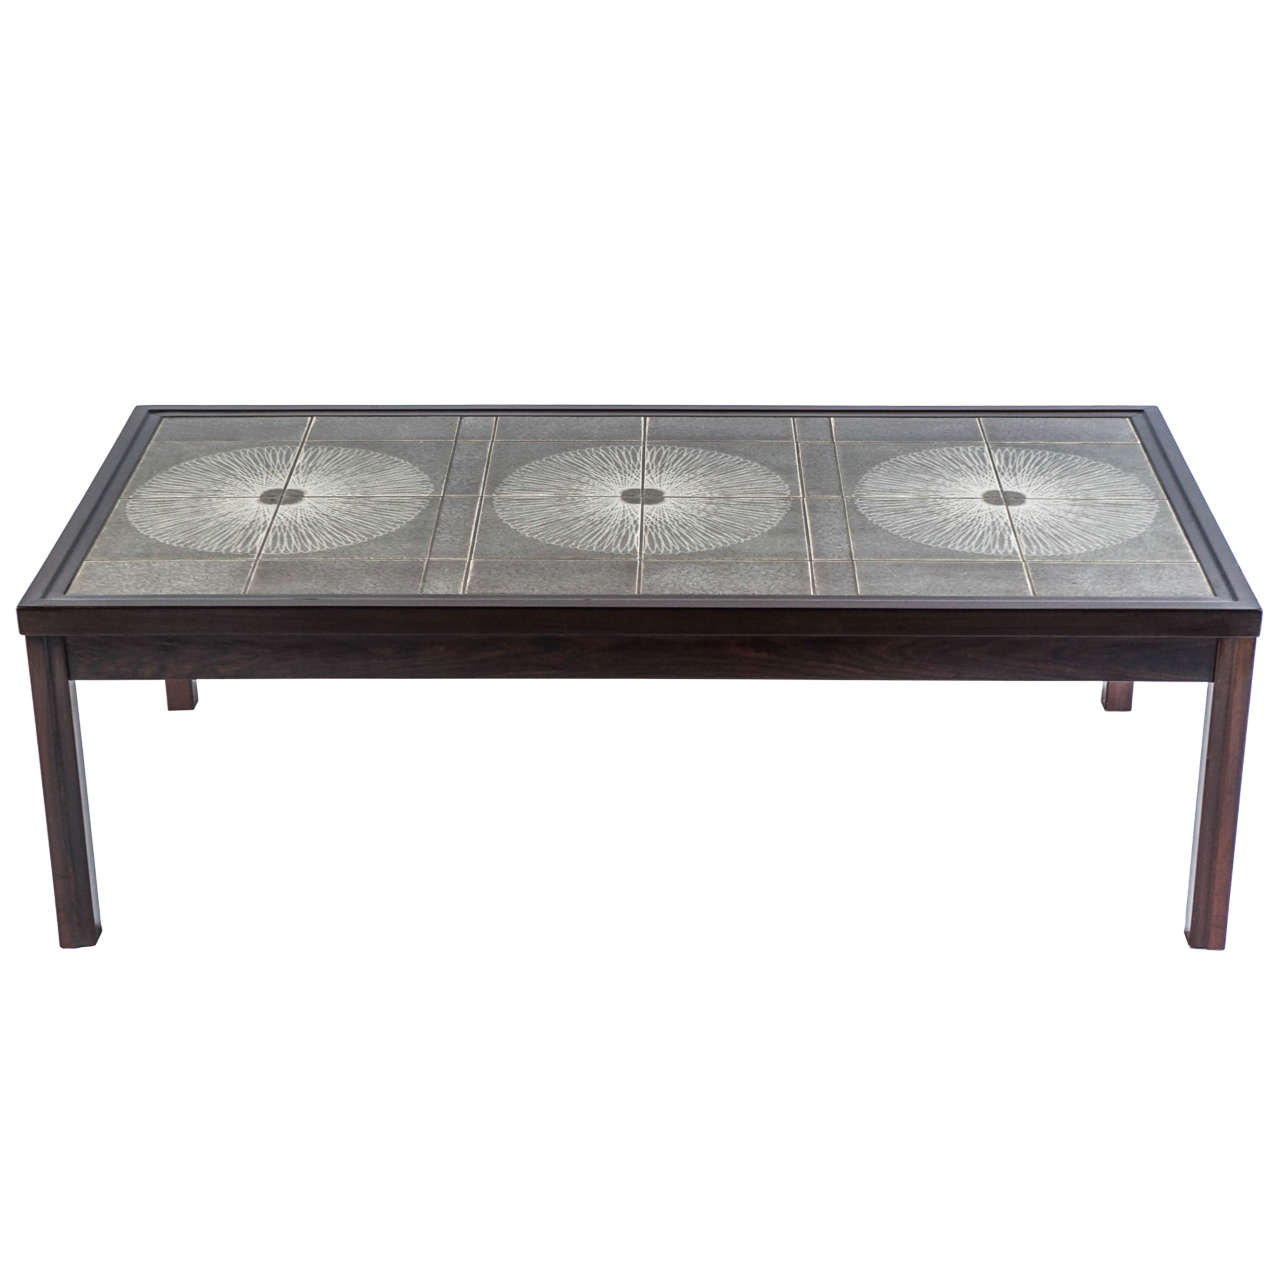 High Quality Danish Tile Top Coffee Table In The Style Of Roger Capron 1